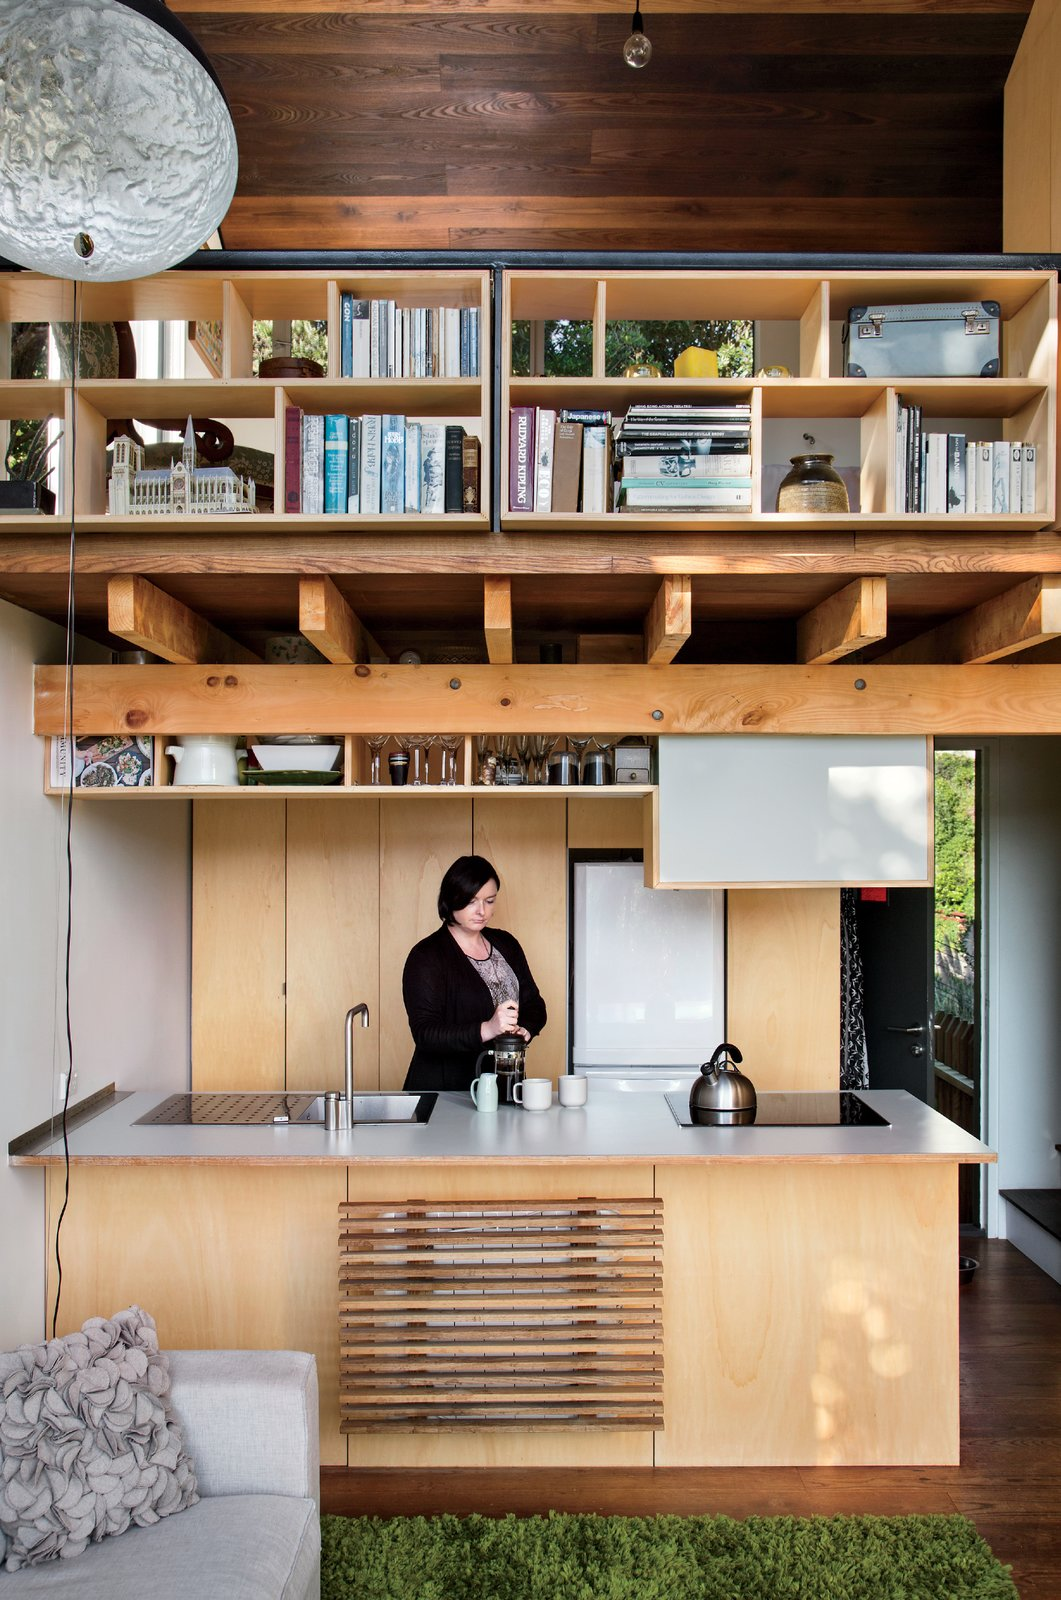 Kitchen, Wood Cabinet, Drop In Sink, Cooktops, Pendant Lighting, Refrigerator, and Medium Hardwood Floor On the ground floor, Simpson's fiancée, Krysty Peebles, makes coffee in a compact kitchen outfitted with a Foraze Panni sink, Bosch induction cooktop, and Mitsubishi refrigerator.  Solutions For Tiny Kitchens by Aileen Kwun from A Home's High Ceilings Are Responsible for Some Impressive Views